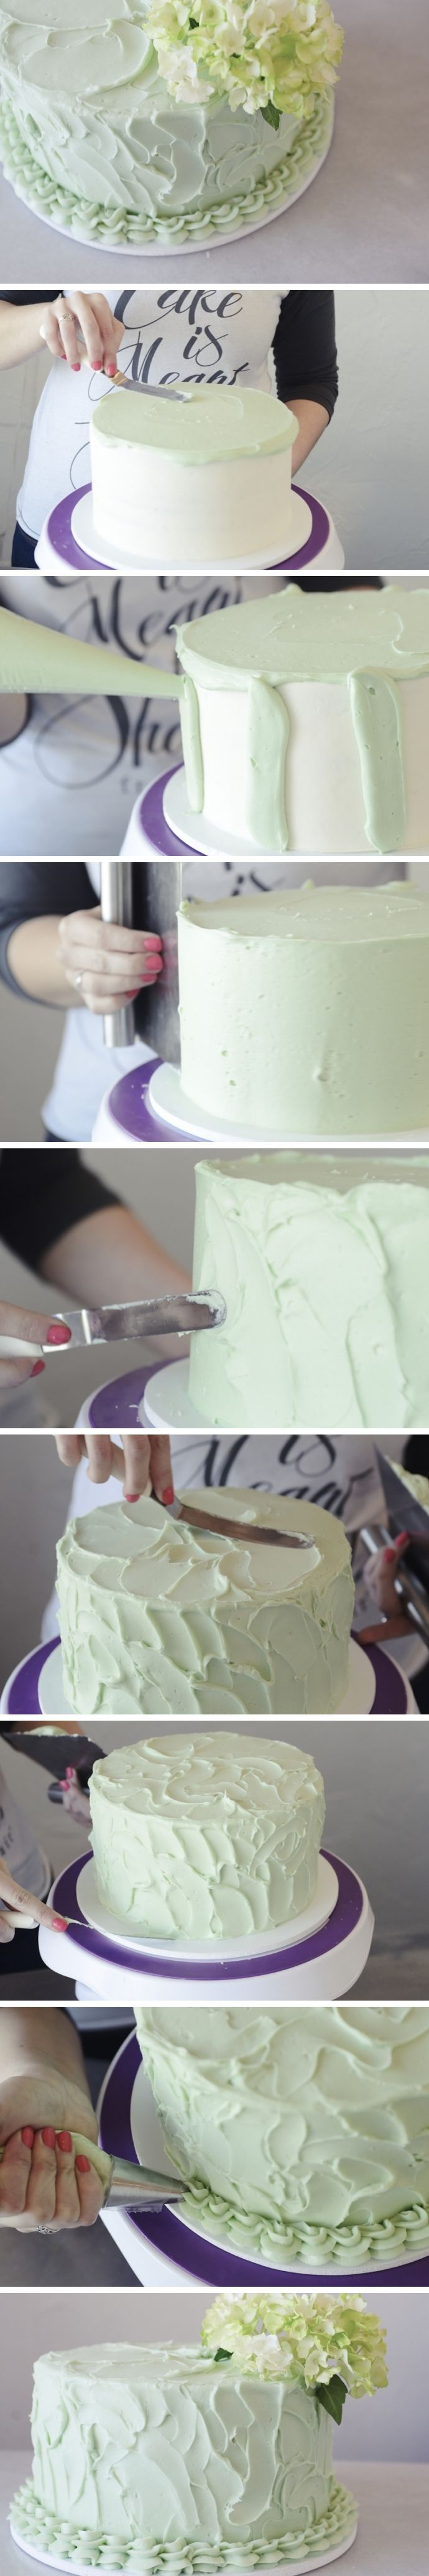 How to Frost a Home-Style Rustic Cake | http://Relish.com